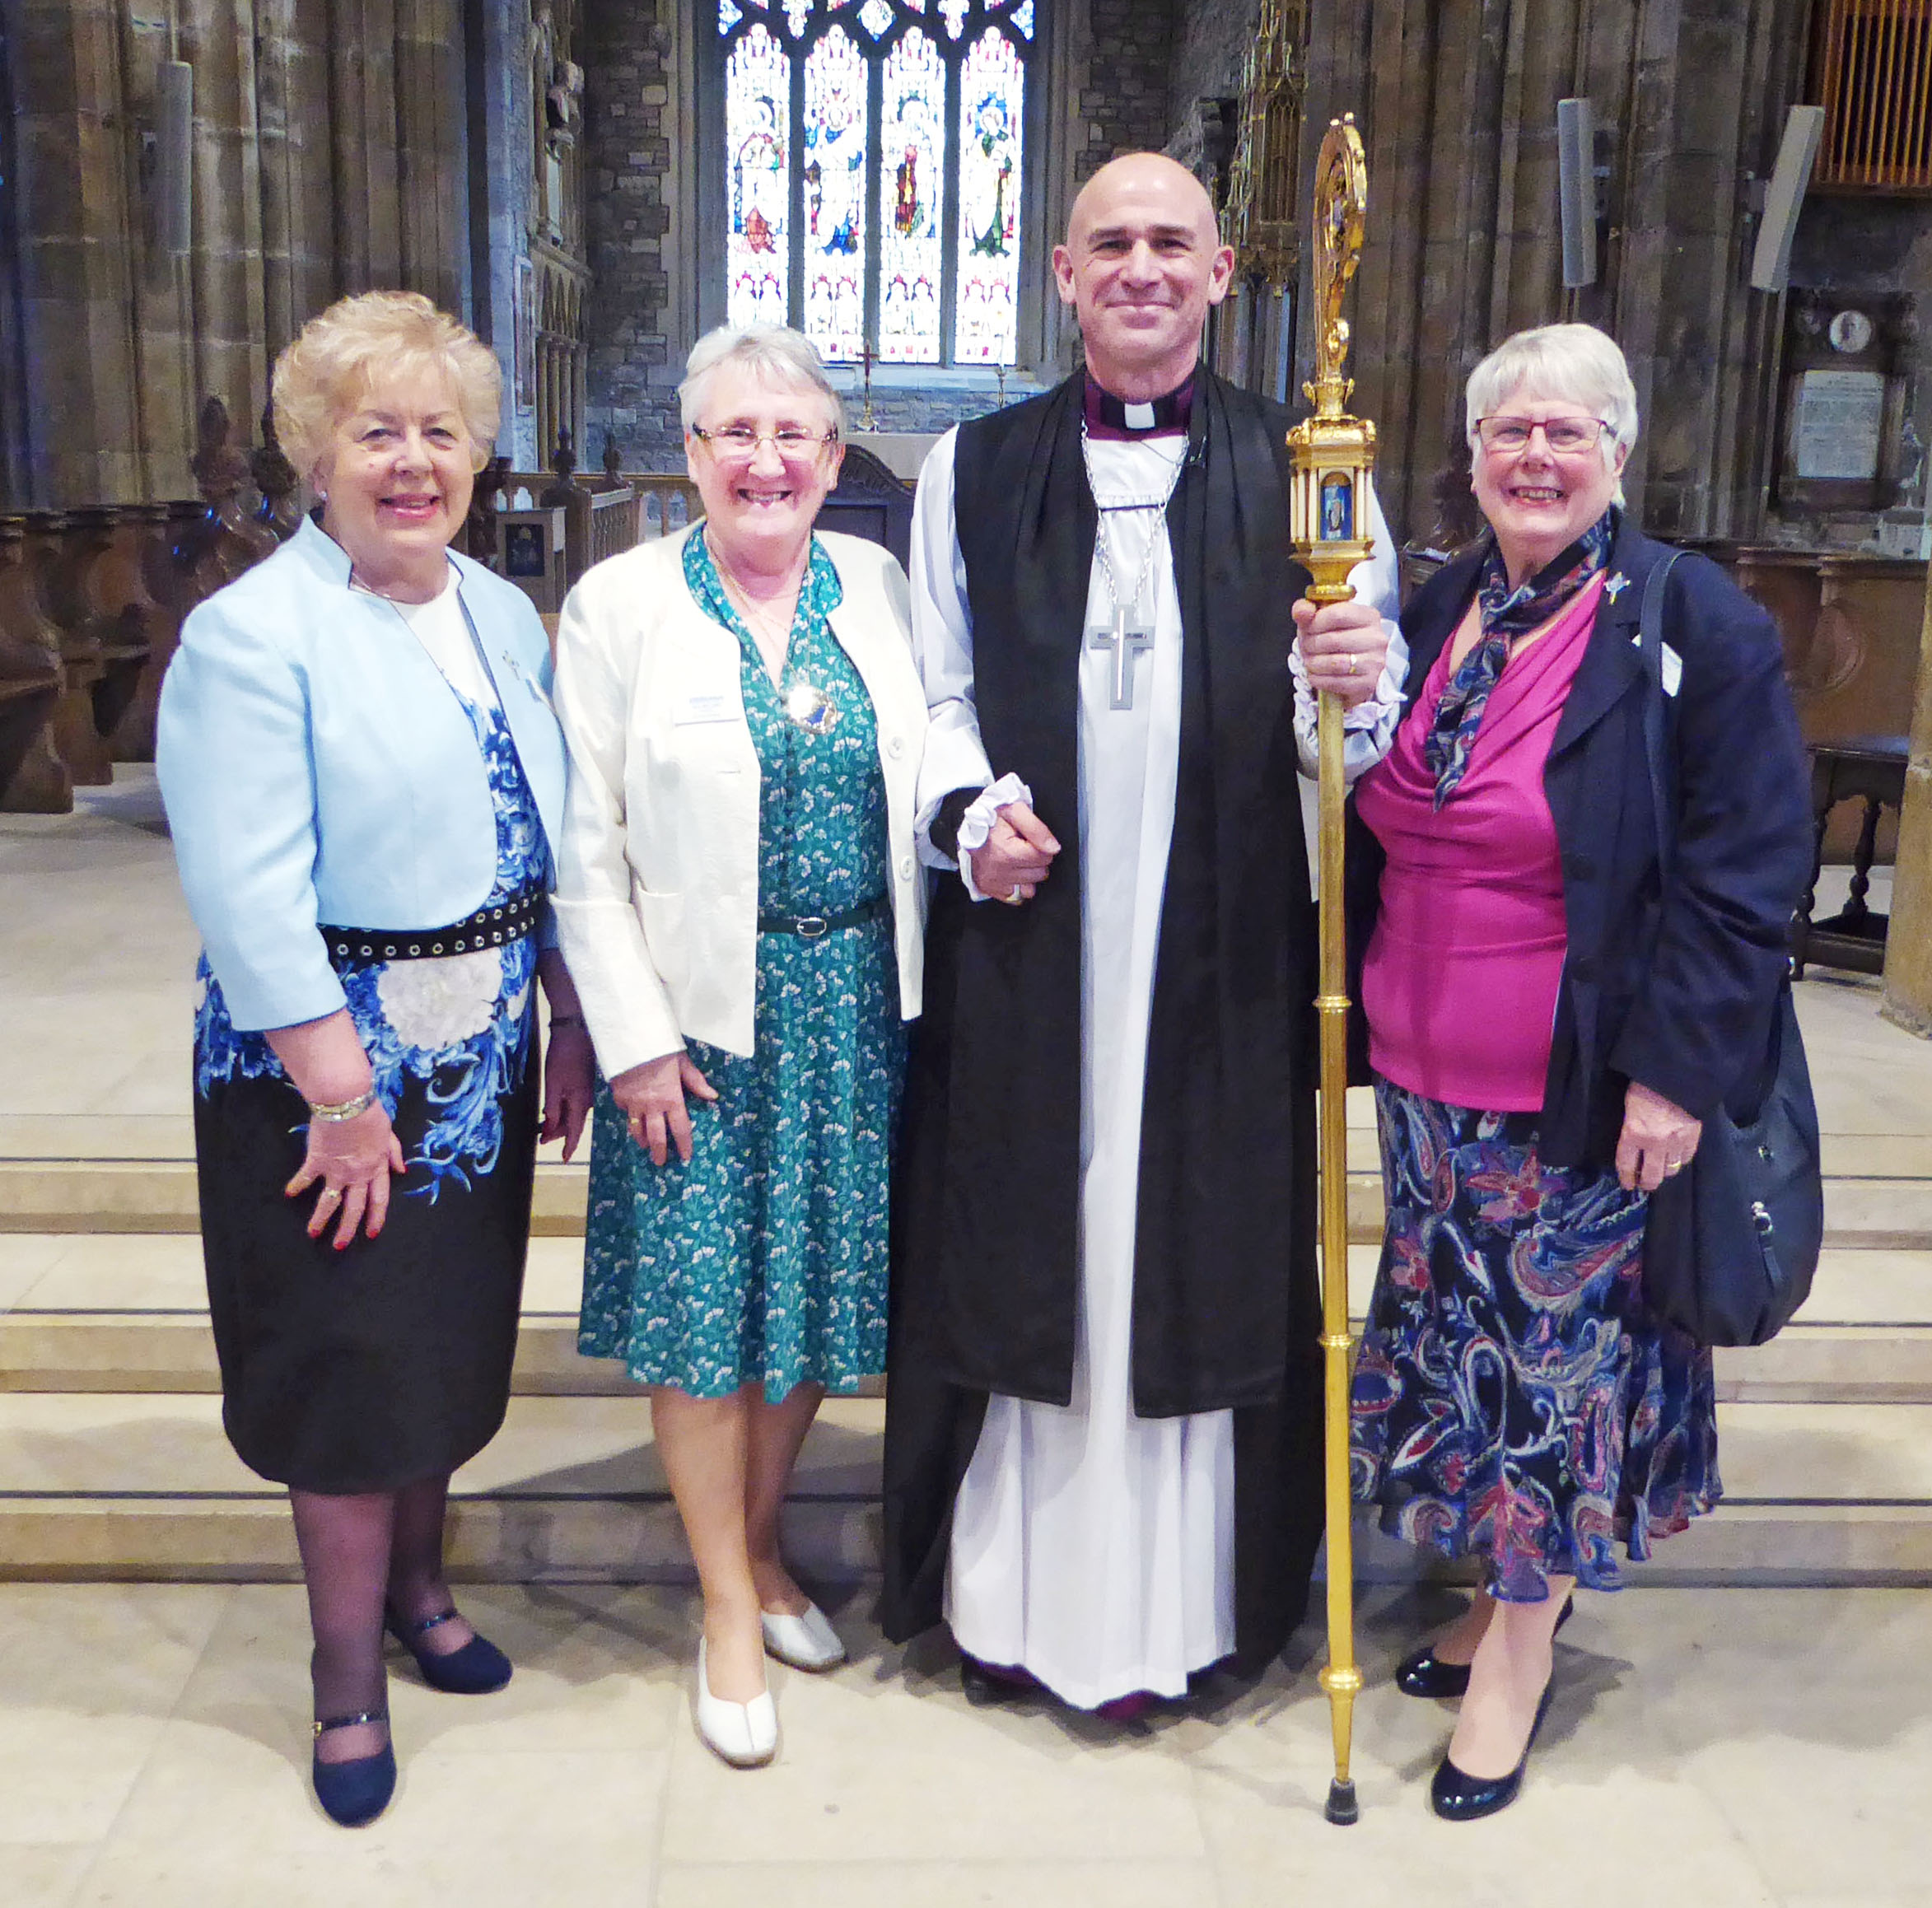 President ,VIPs and Bishop Pete